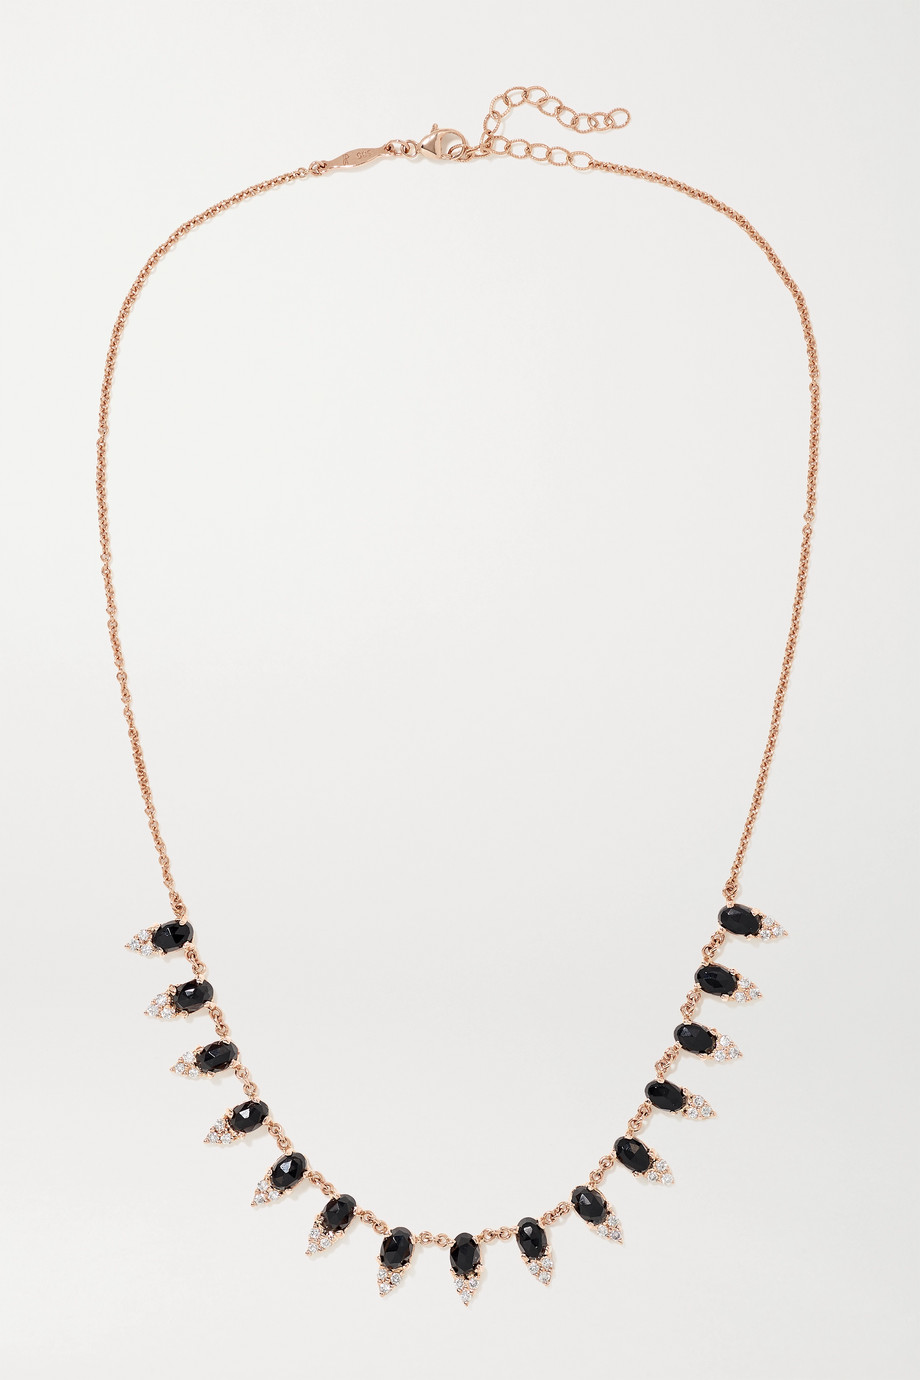 Jacquie Aiche Collier en or rose 18 carats, onyx et diamants